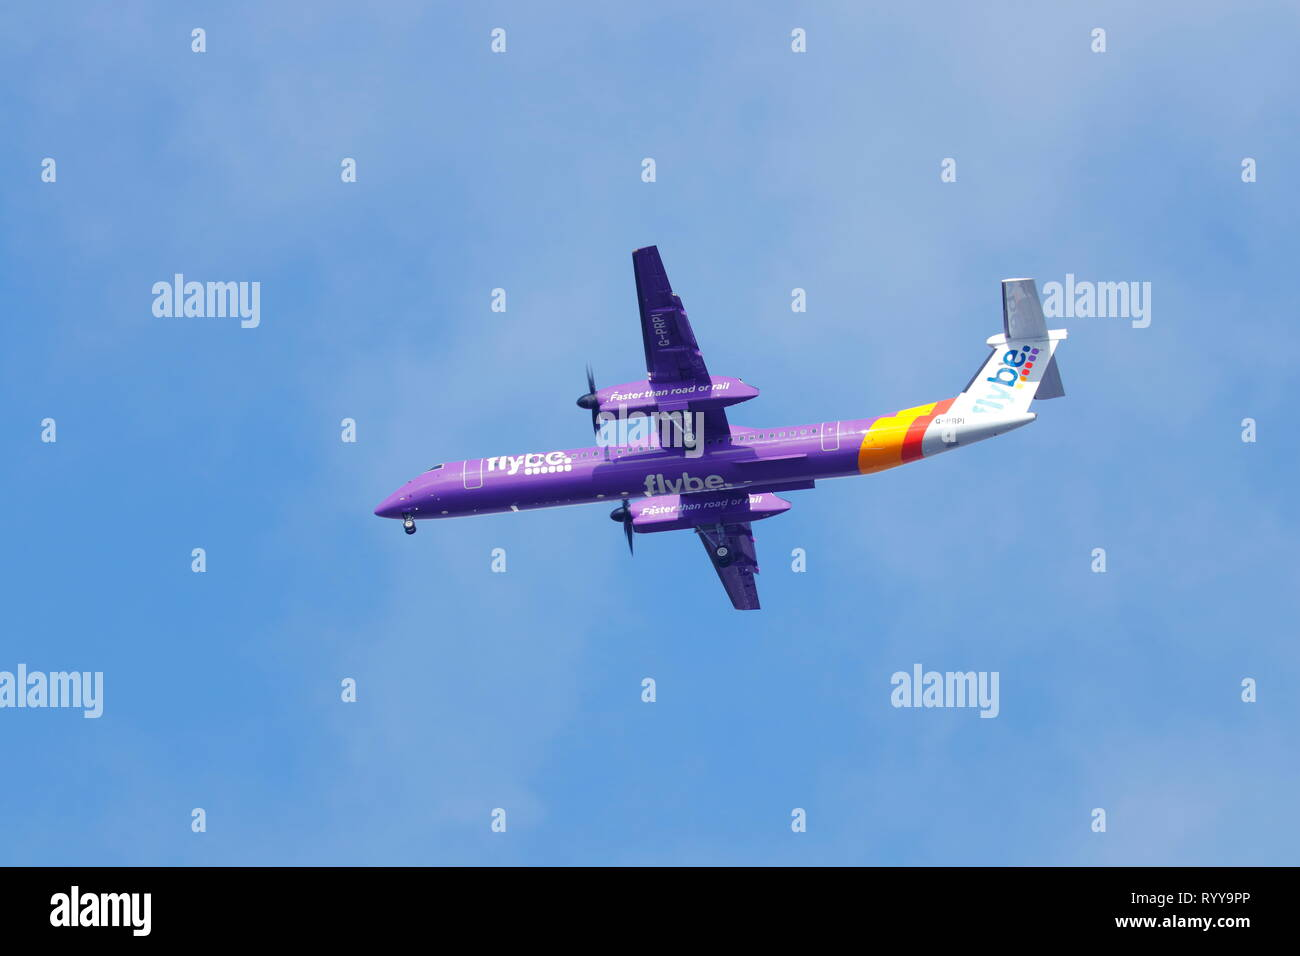 Flybe De Havilland Bombardier Dash 8 on final approach to Leeds Bradford International Airport. - Stock Image